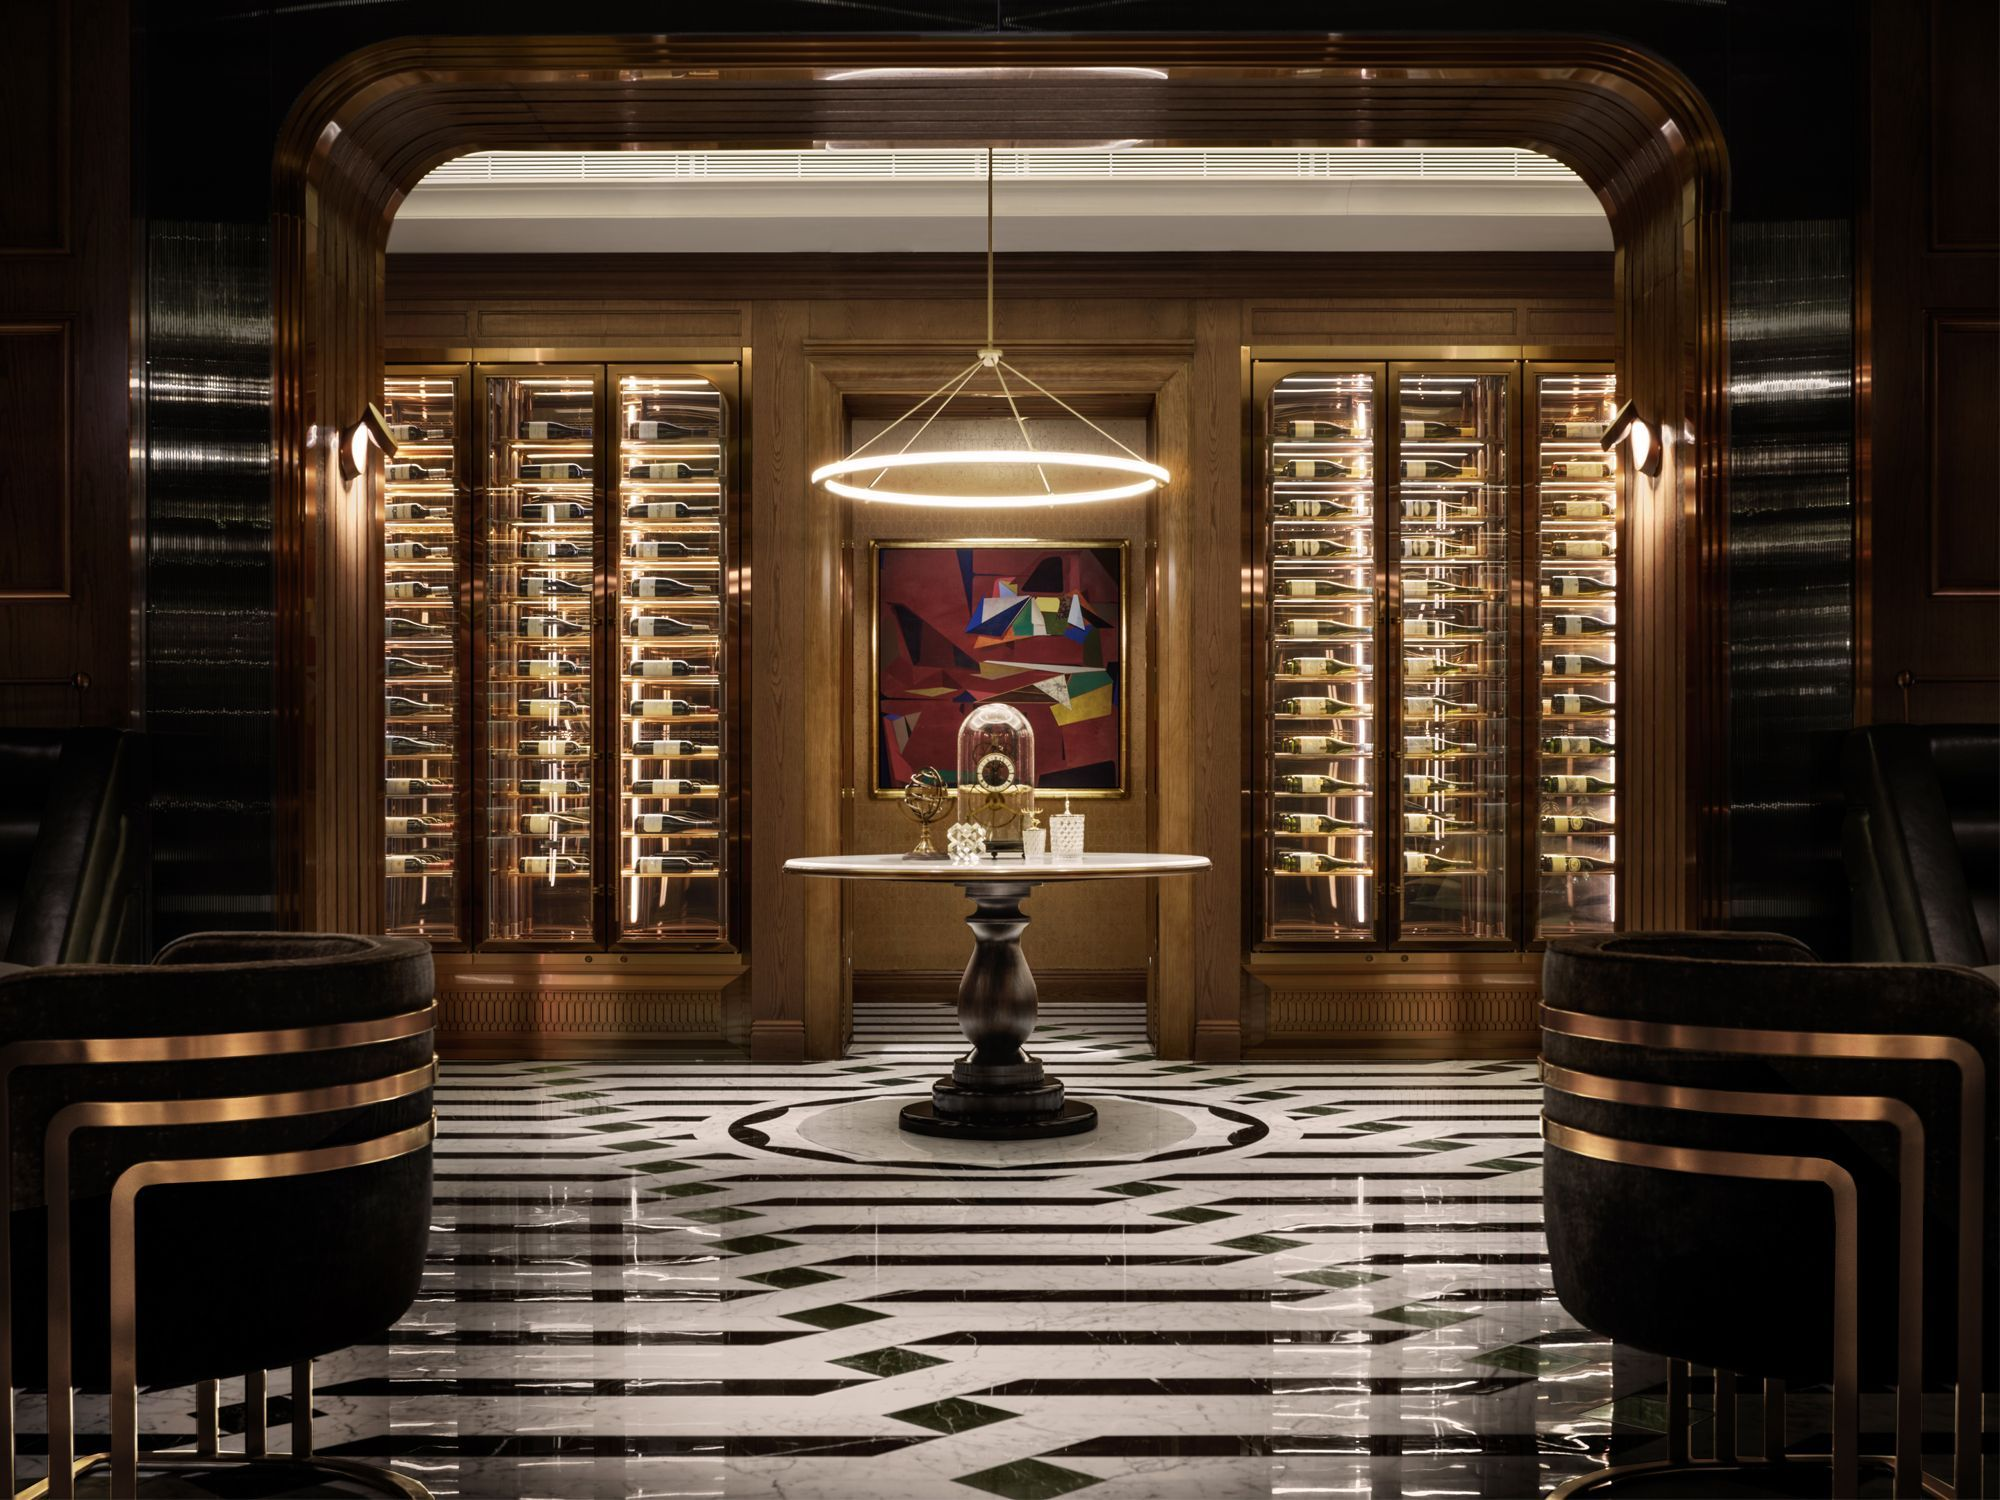 The St. Regis Bar Macao reinterprets classic British elegance through a richly textured setting